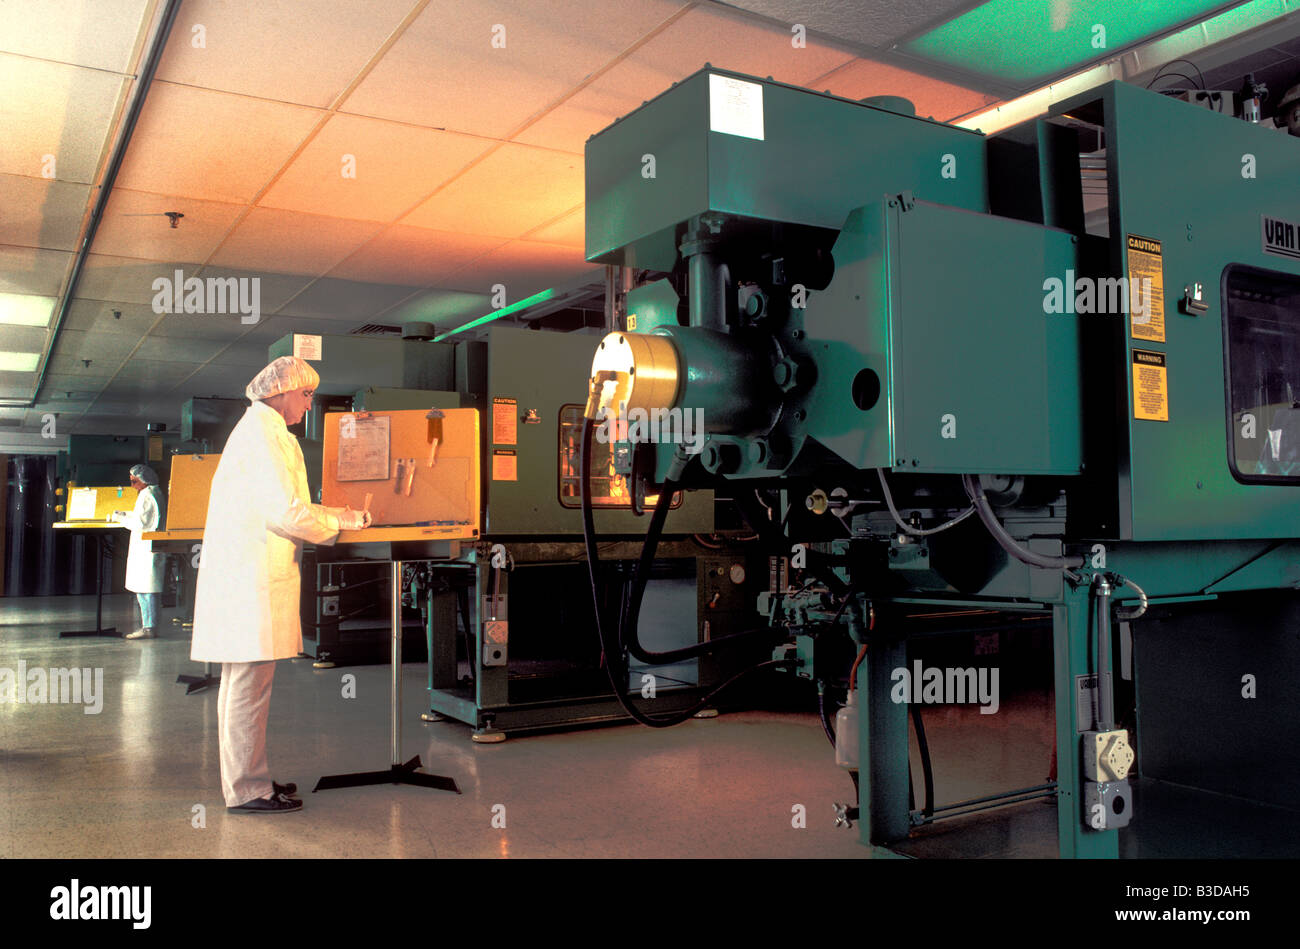 Plastic injection molding - Stock Image